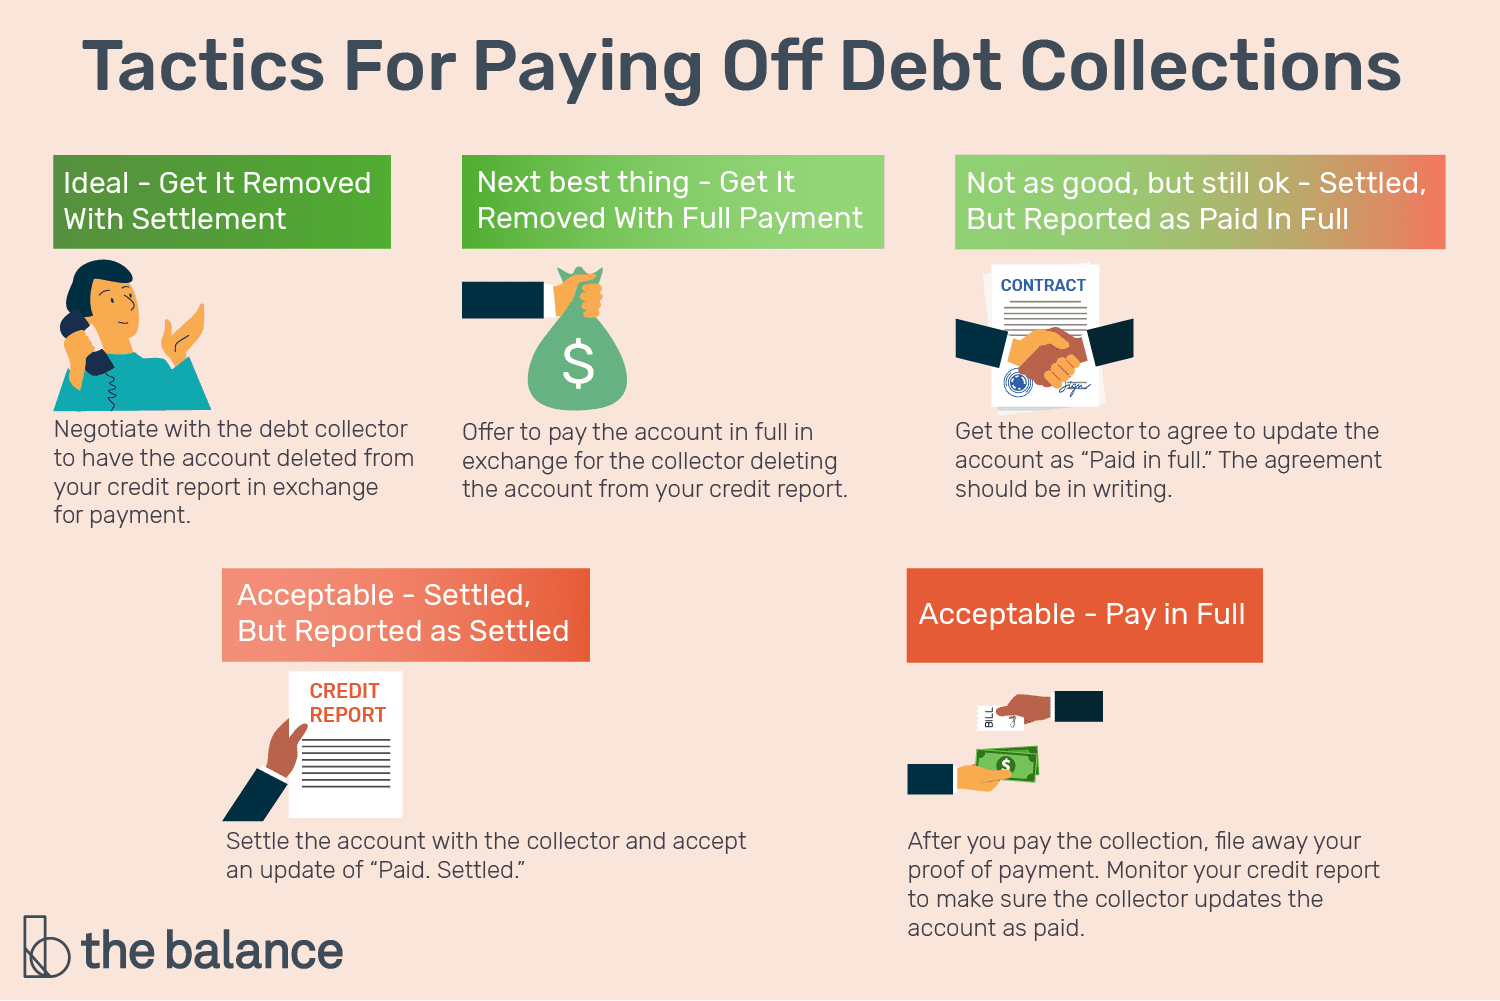 Tactics For Paying Off Debt Collections